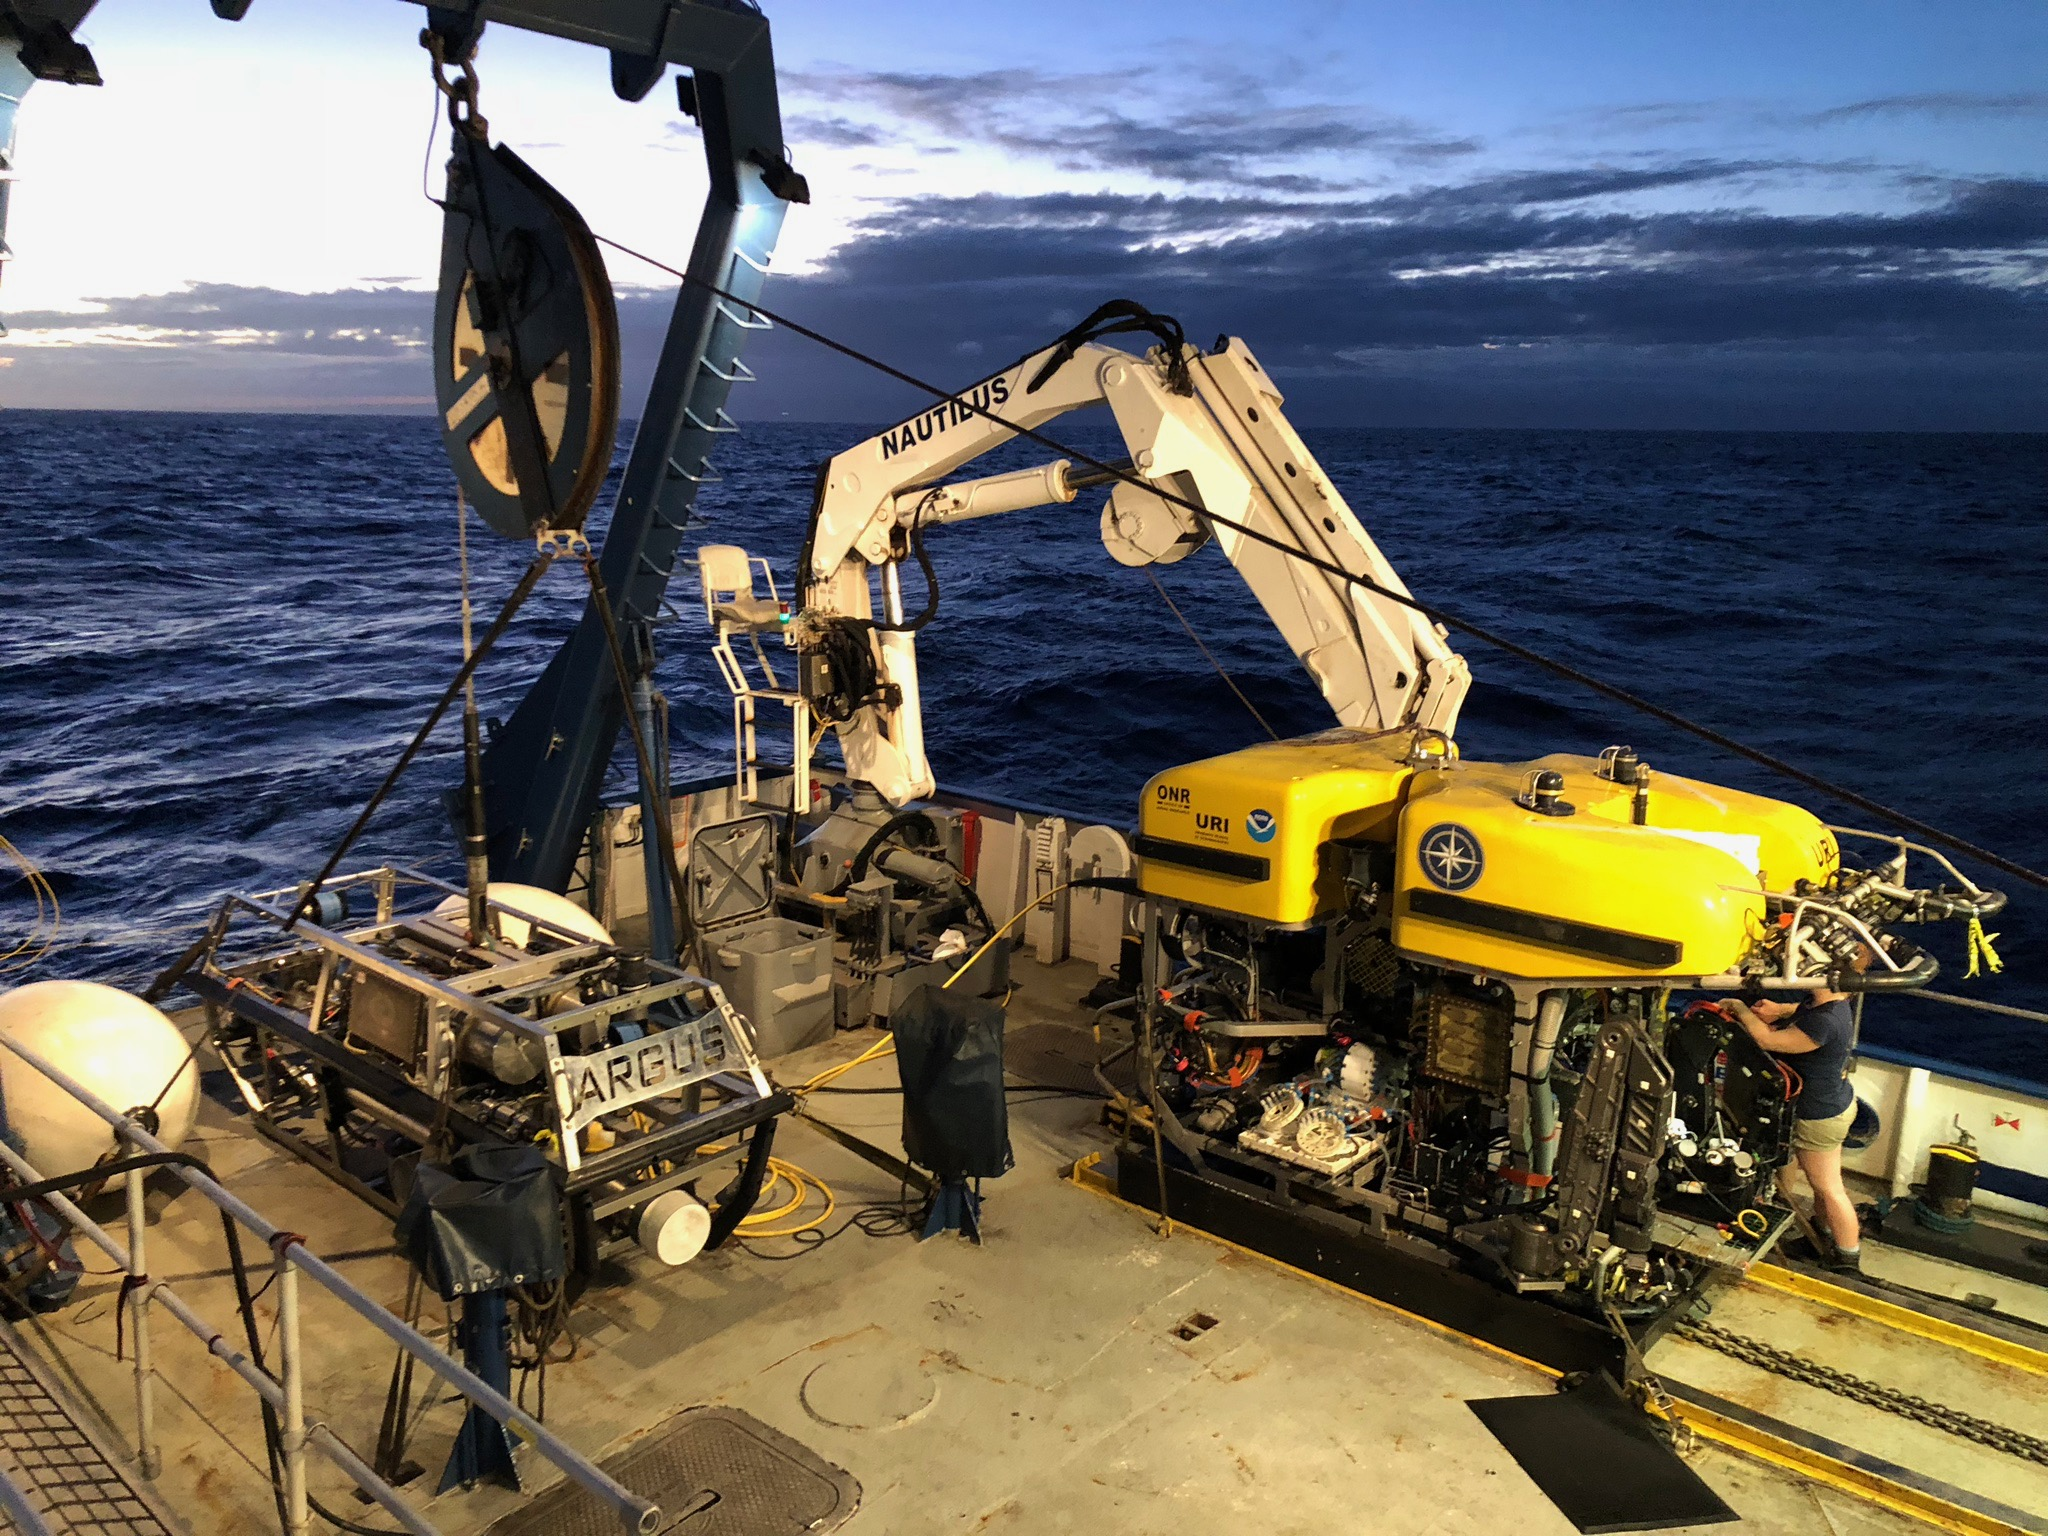 ROVs Hercules (bigger, yellow one) and Argus (smaller, silver one) on the E/V Nautilus